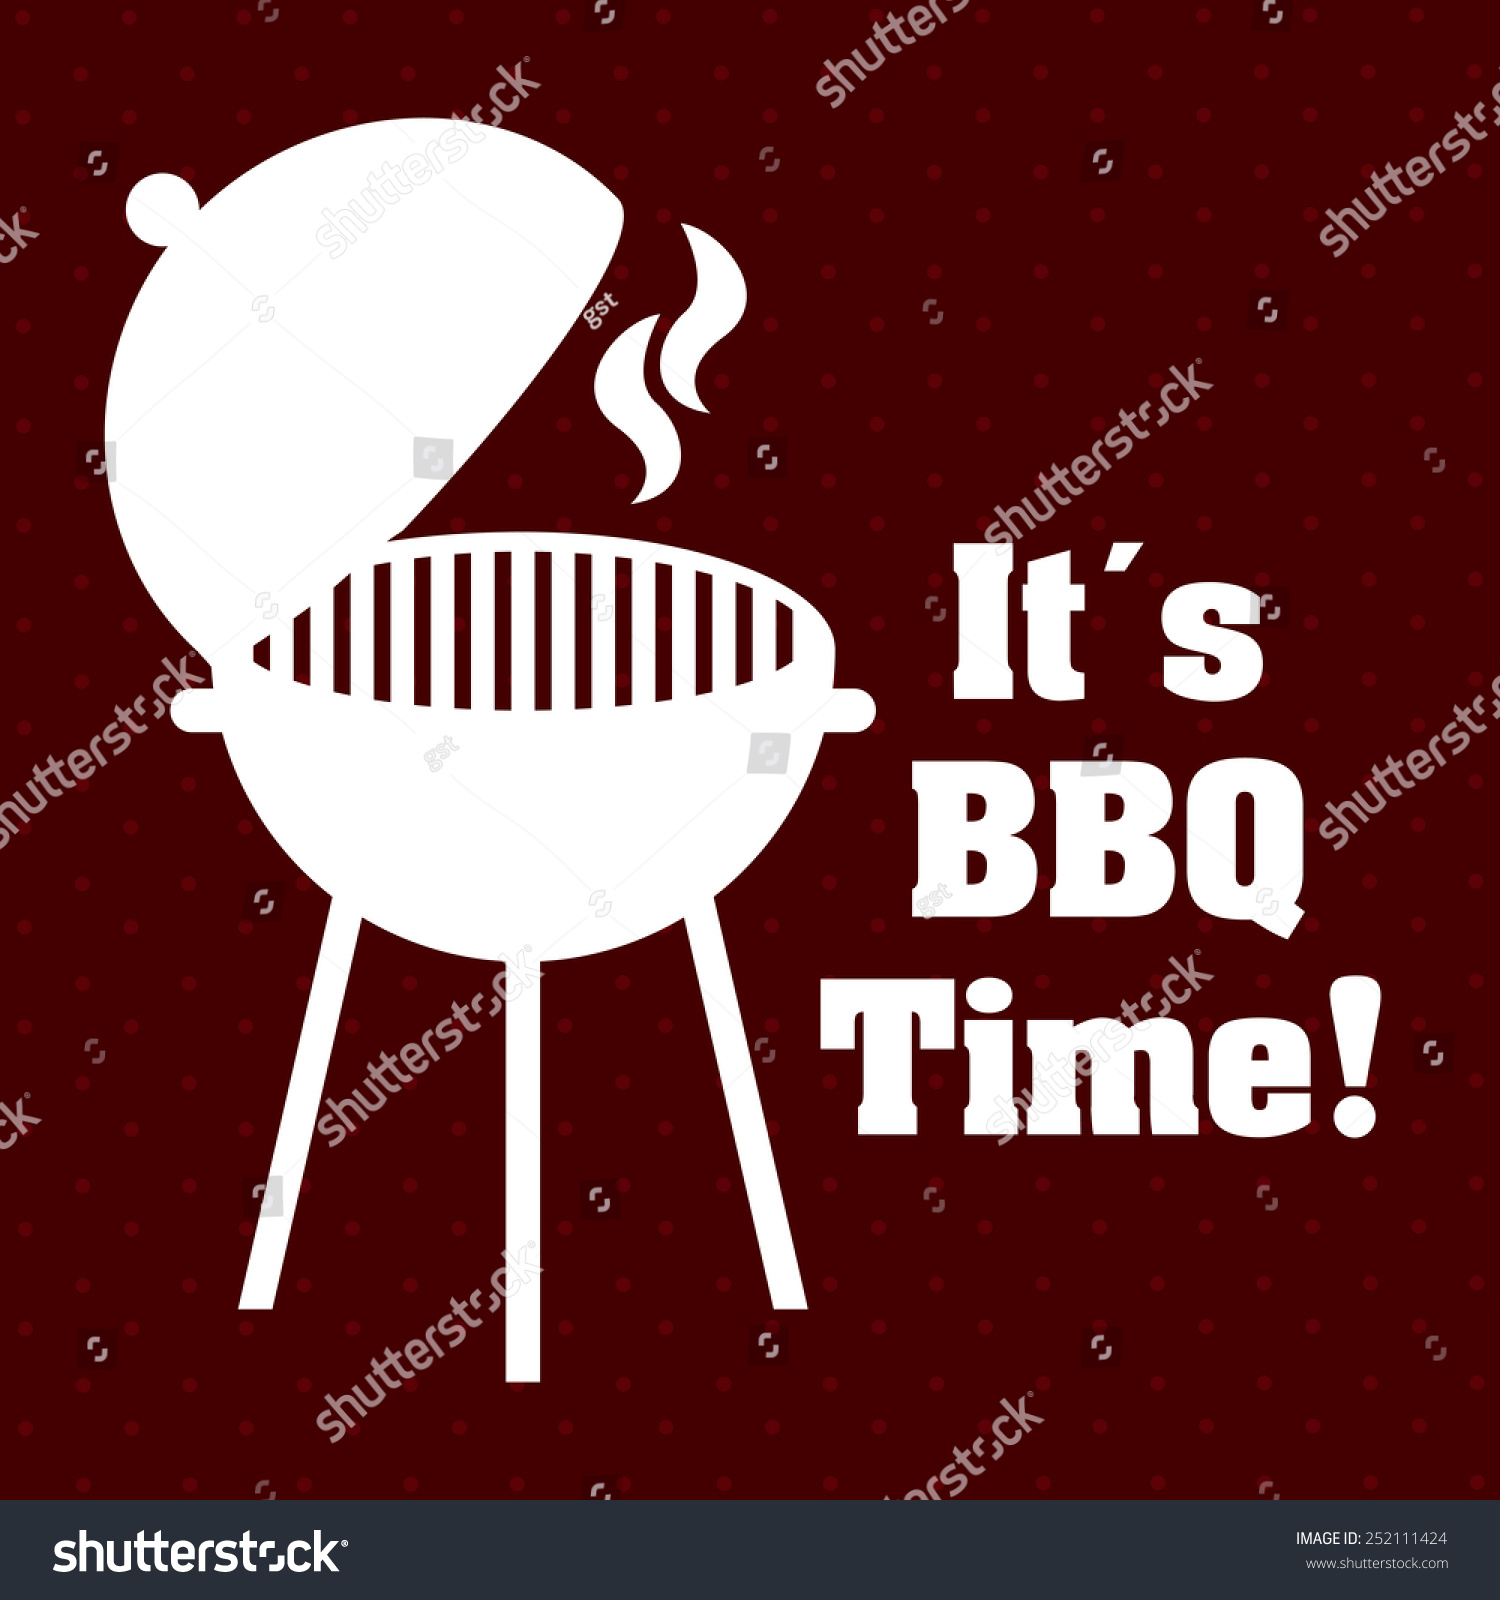 Barbecue restaurant design vector illustration eps stock